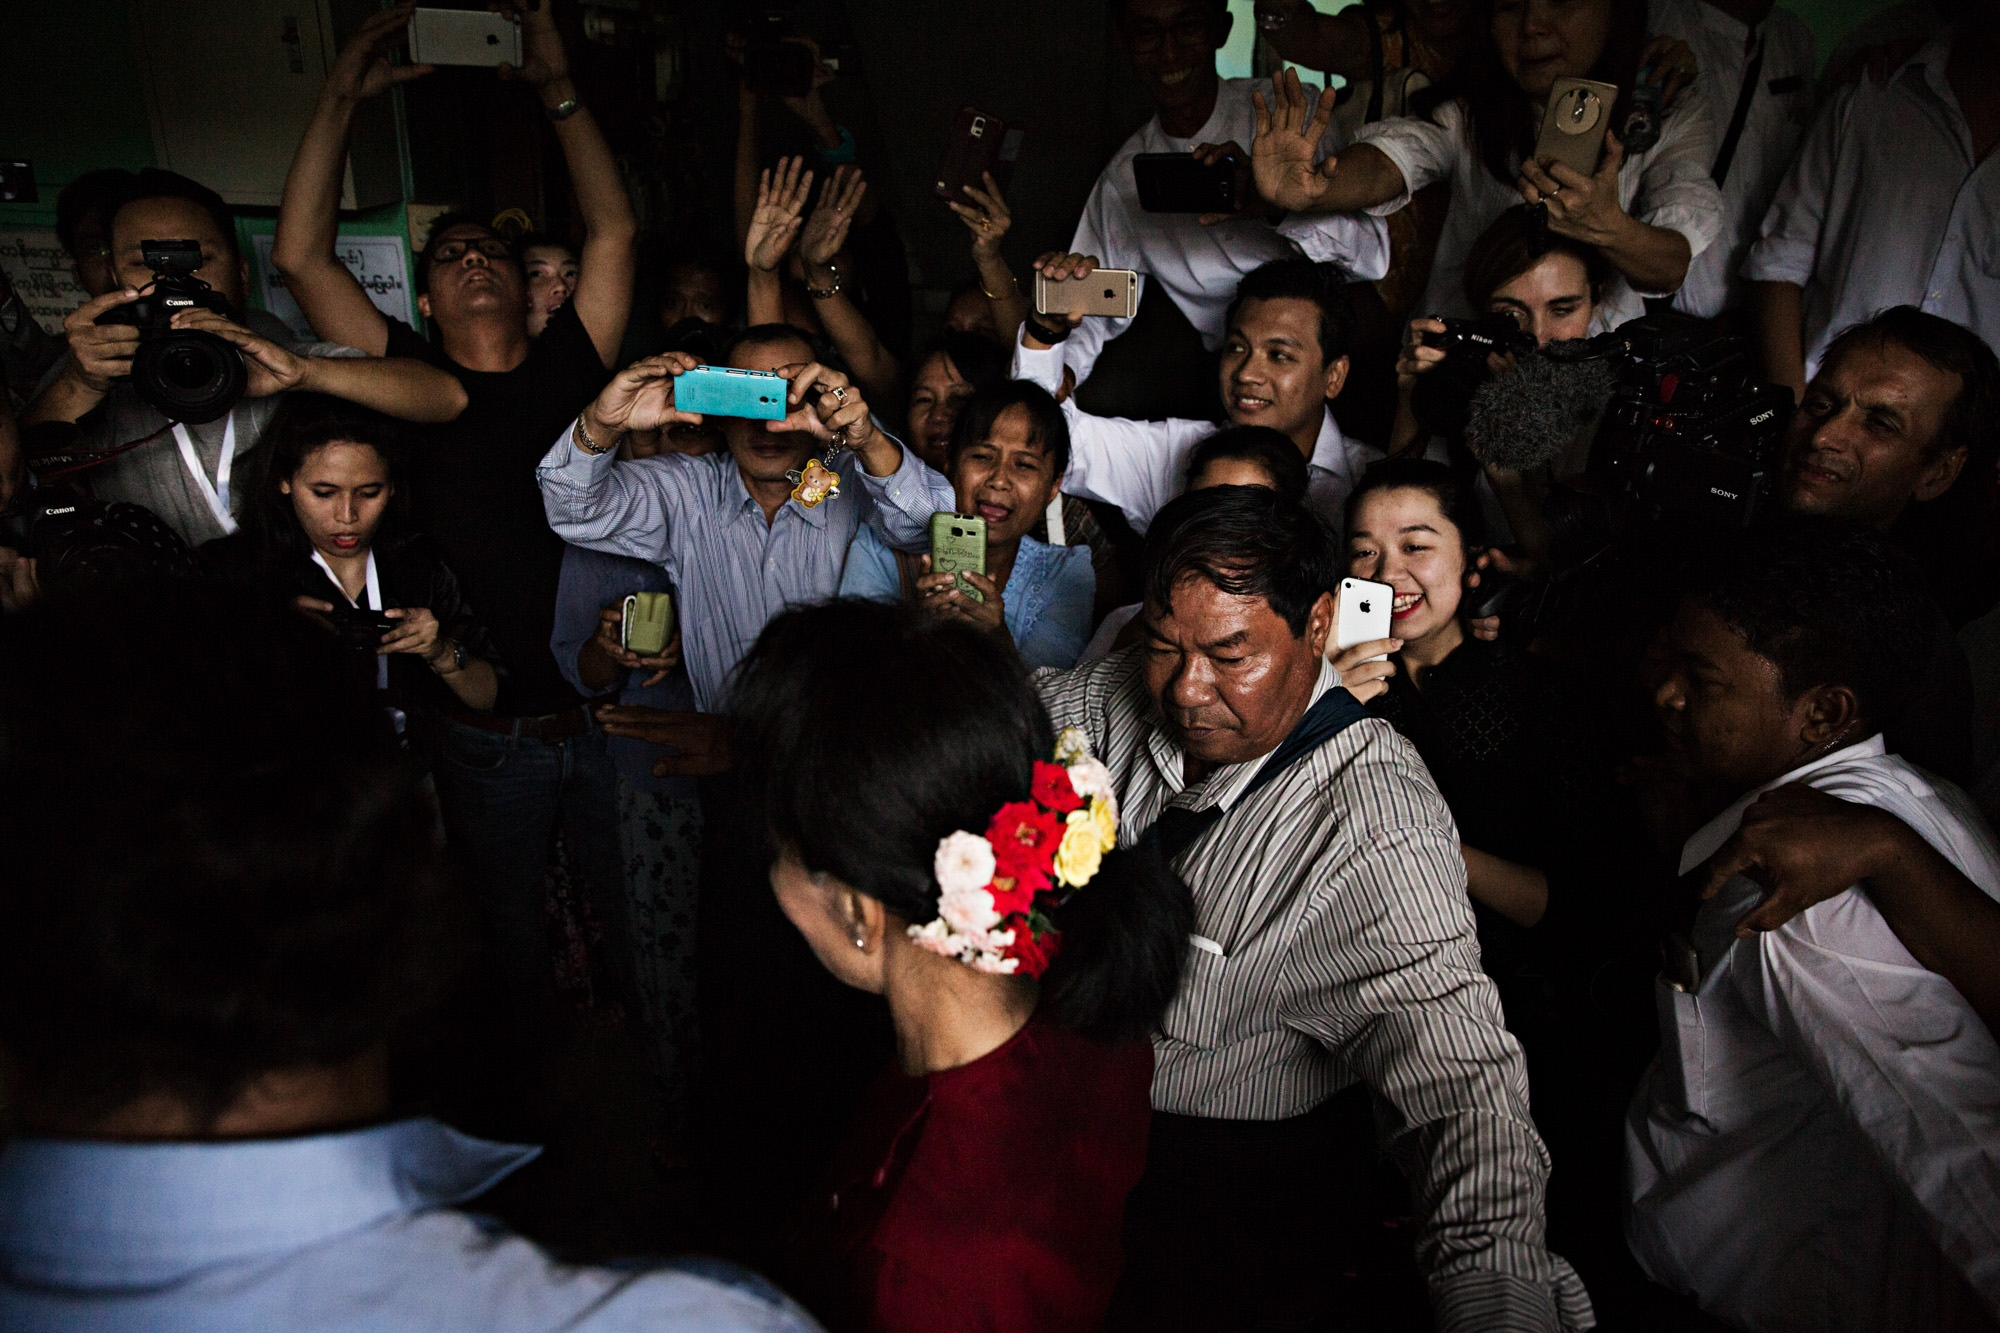 Aung San Suu Kyi makes her way through a small crowd after casting her vote in the historic 2015 elections in Yangon.